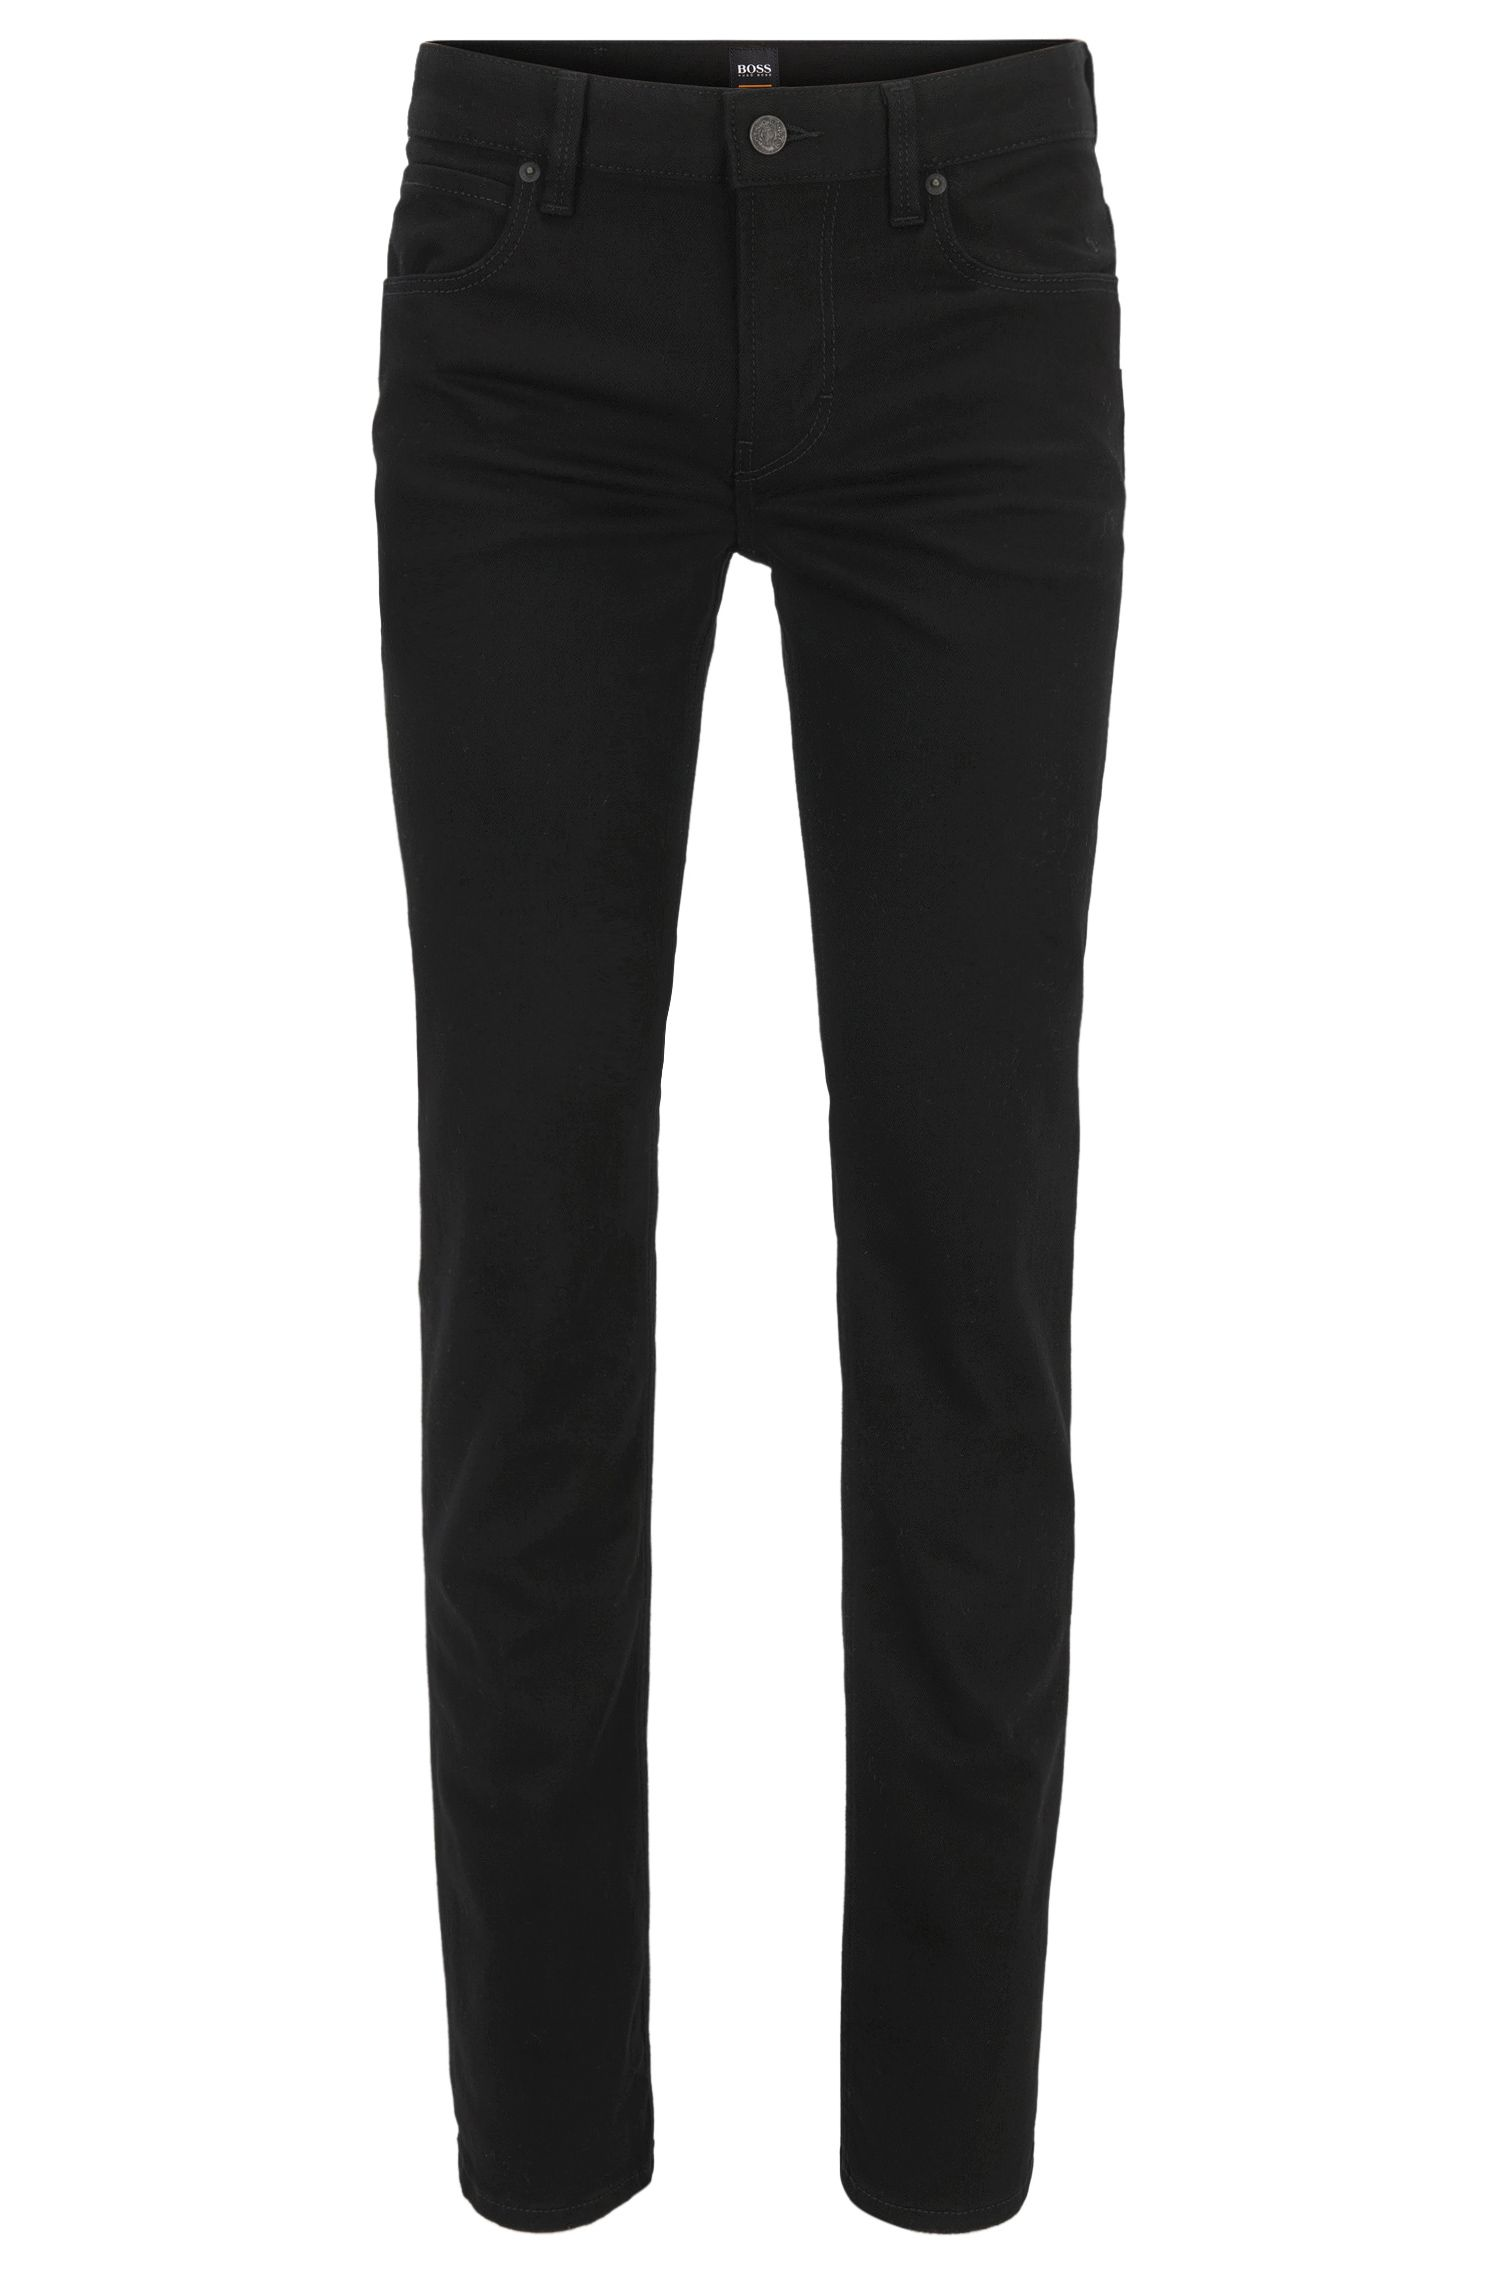 Slim-fit jeans in stay black-denim